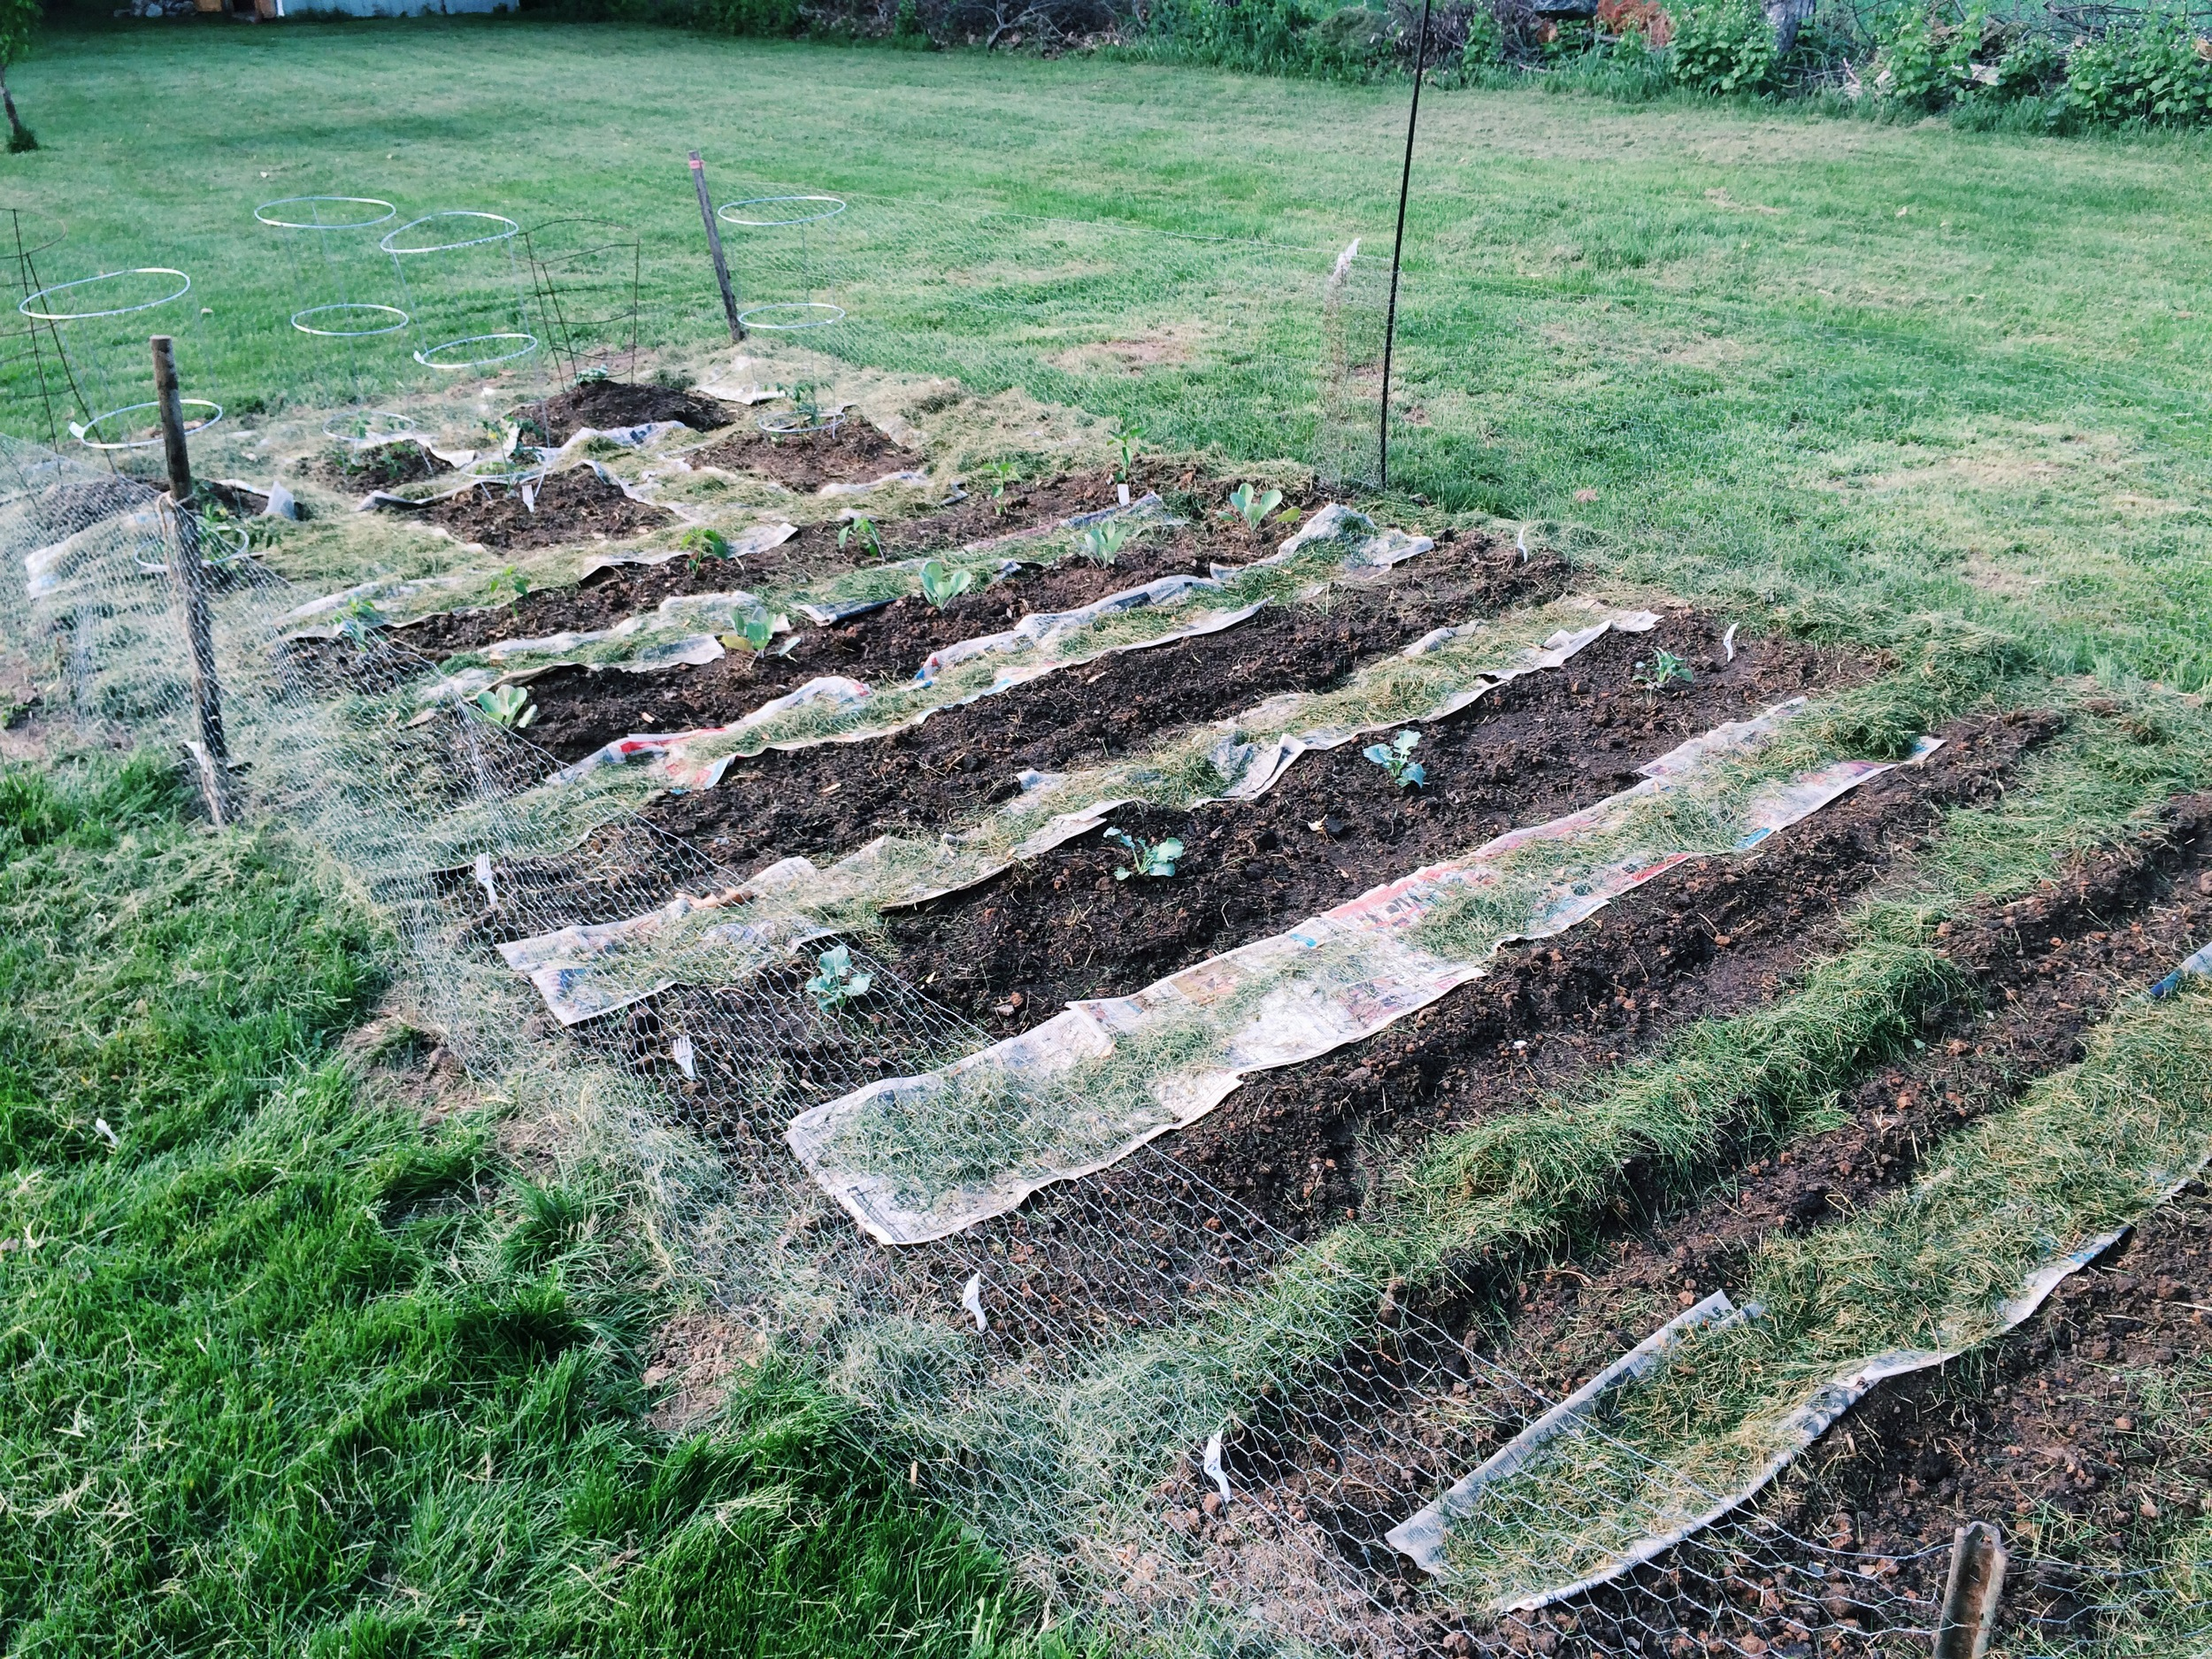 **WARNING**   I am not a gardening pro and this is my FIRST GARDEN.  This is trial by fire.  I'll write about my experiences, successes and failures, but I make no claims that I have any idea what the hell I'm doing!  Let's do this!